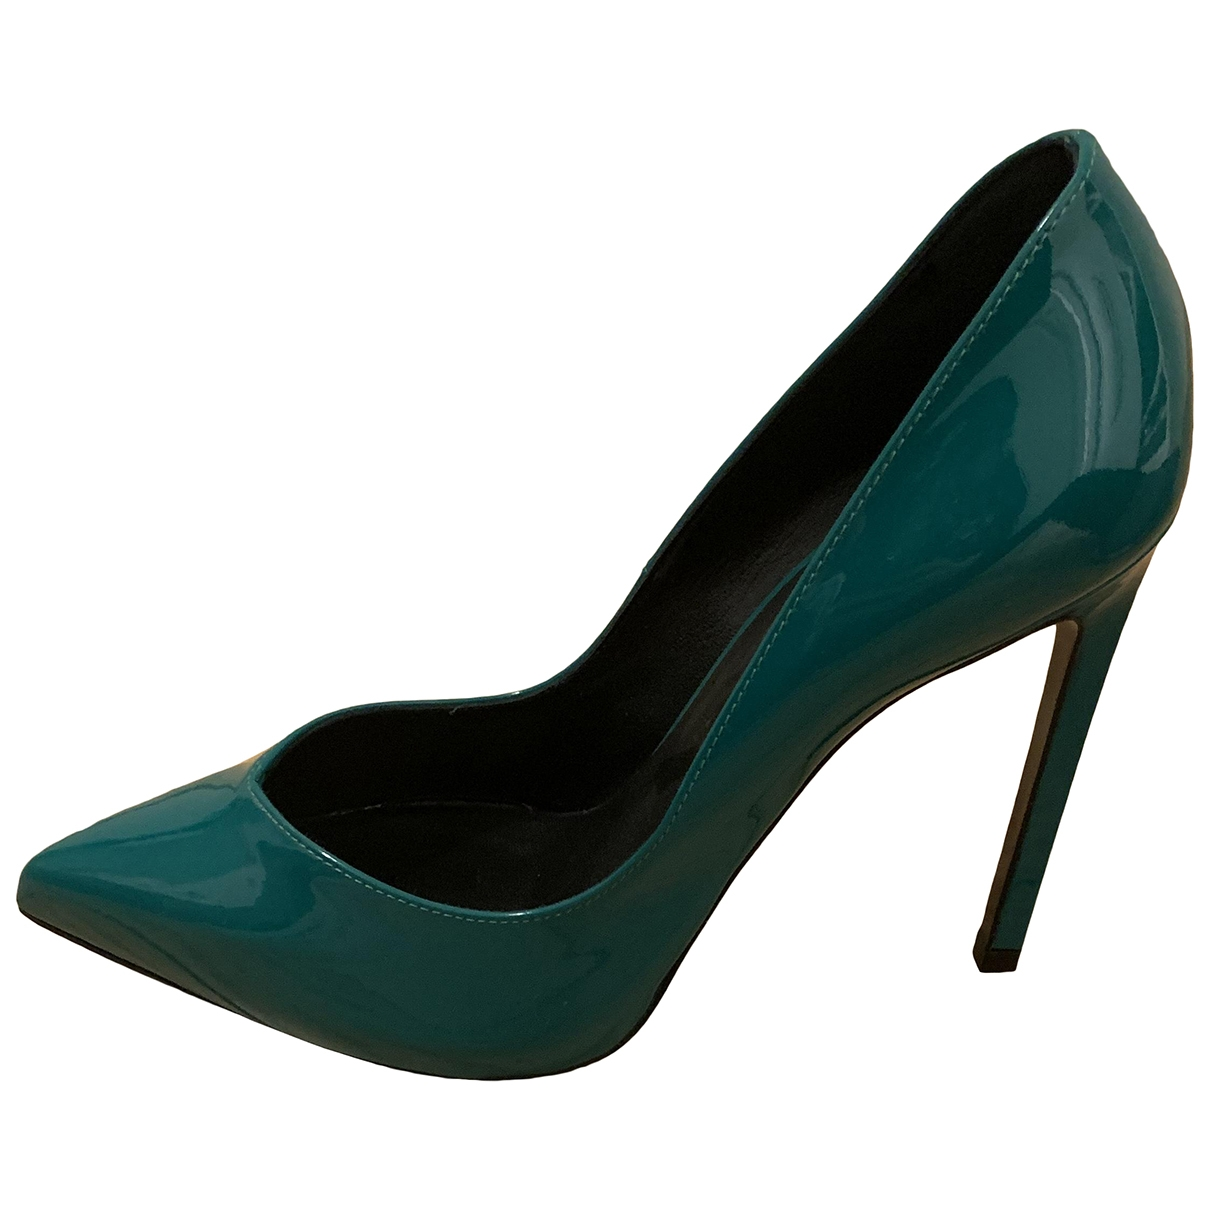 Saint Laurent \N Pumps in  Gruen Lackleder